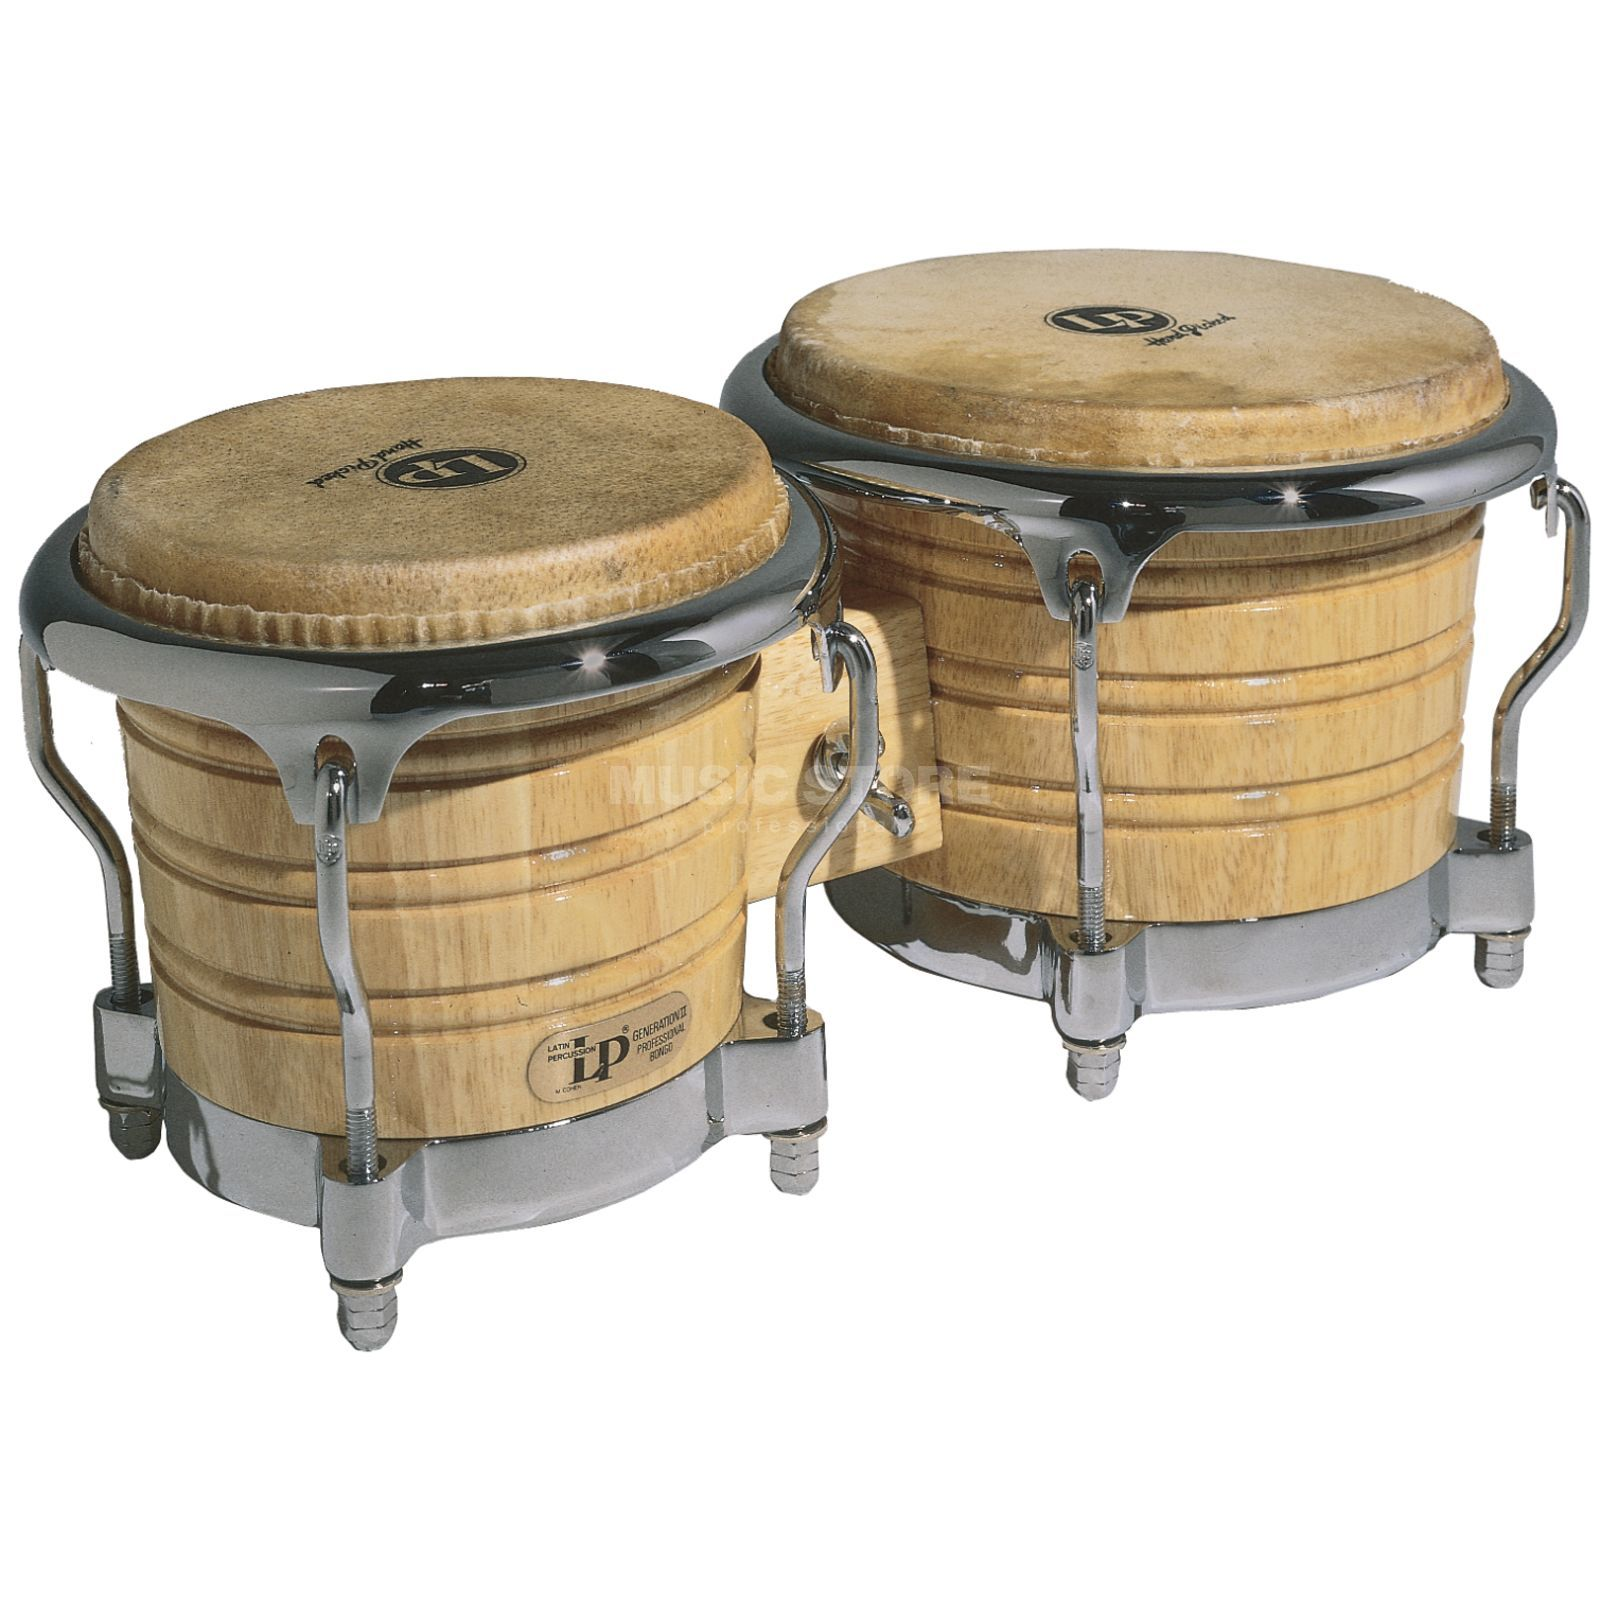 "Latin Percussion Generation II Bongos LP201AX-2 7""+ 8 5/8"", Natural Produktbillede"